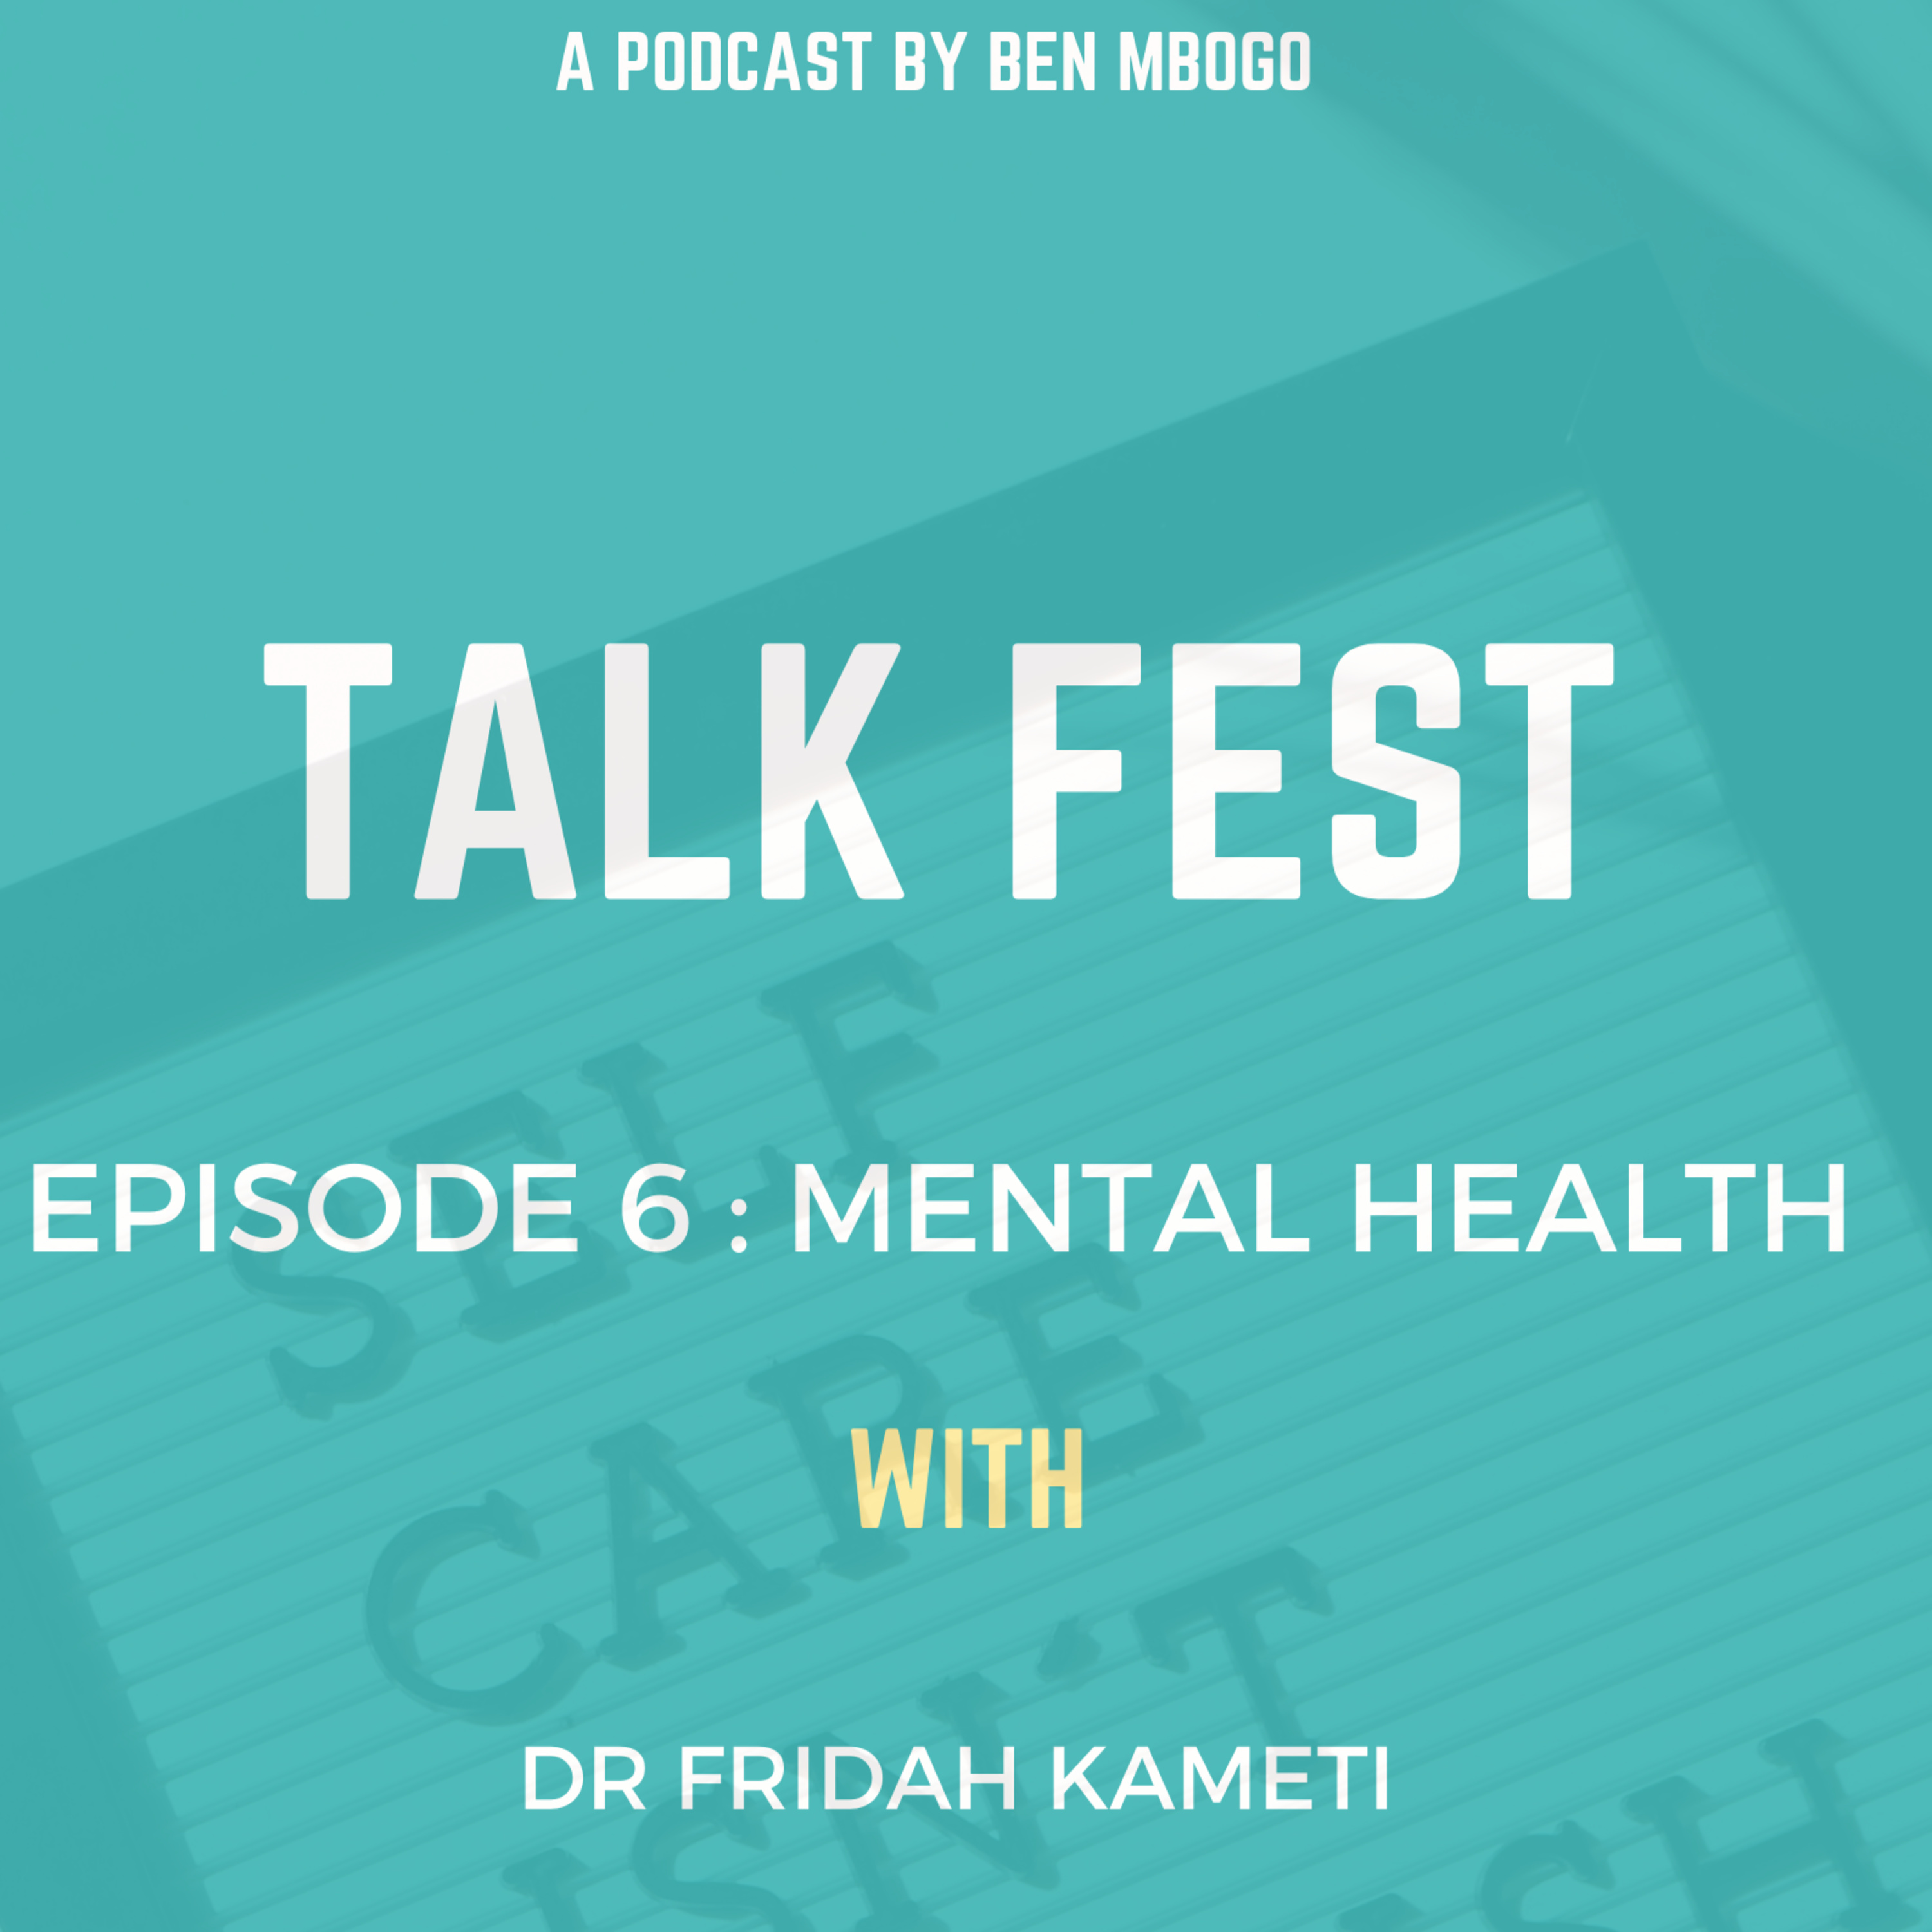 Episode 6 - MENTAL HEALTH